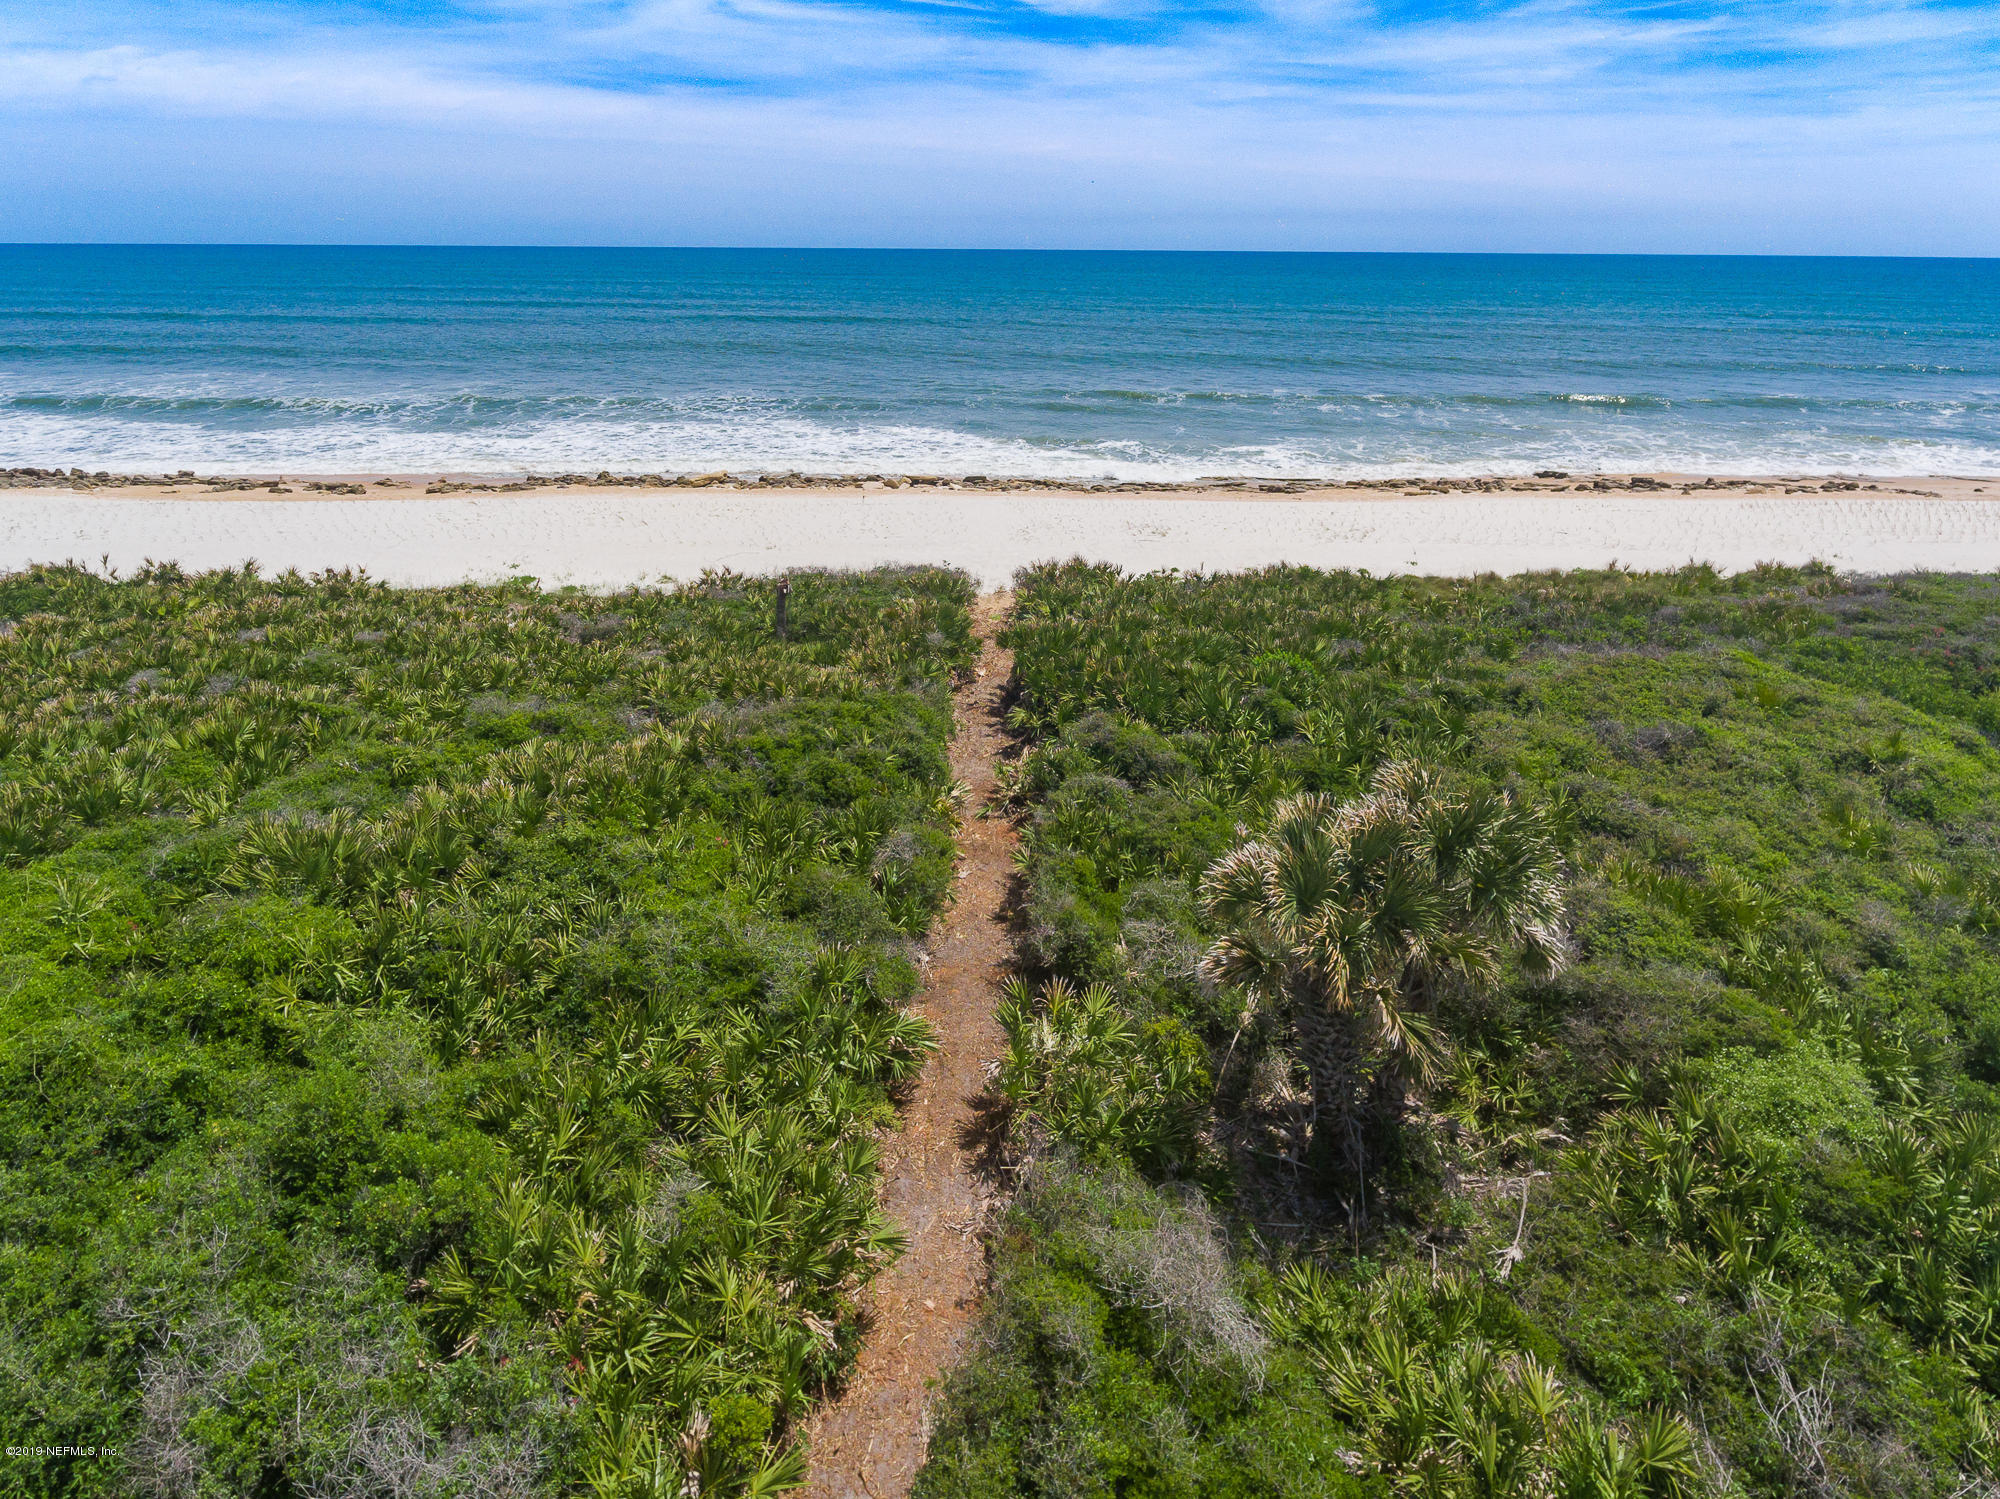 208 SURFVIEW, PALM COAST, FLORIDA 32137, ,Vacant land,For sale,SURFVIEW,994158